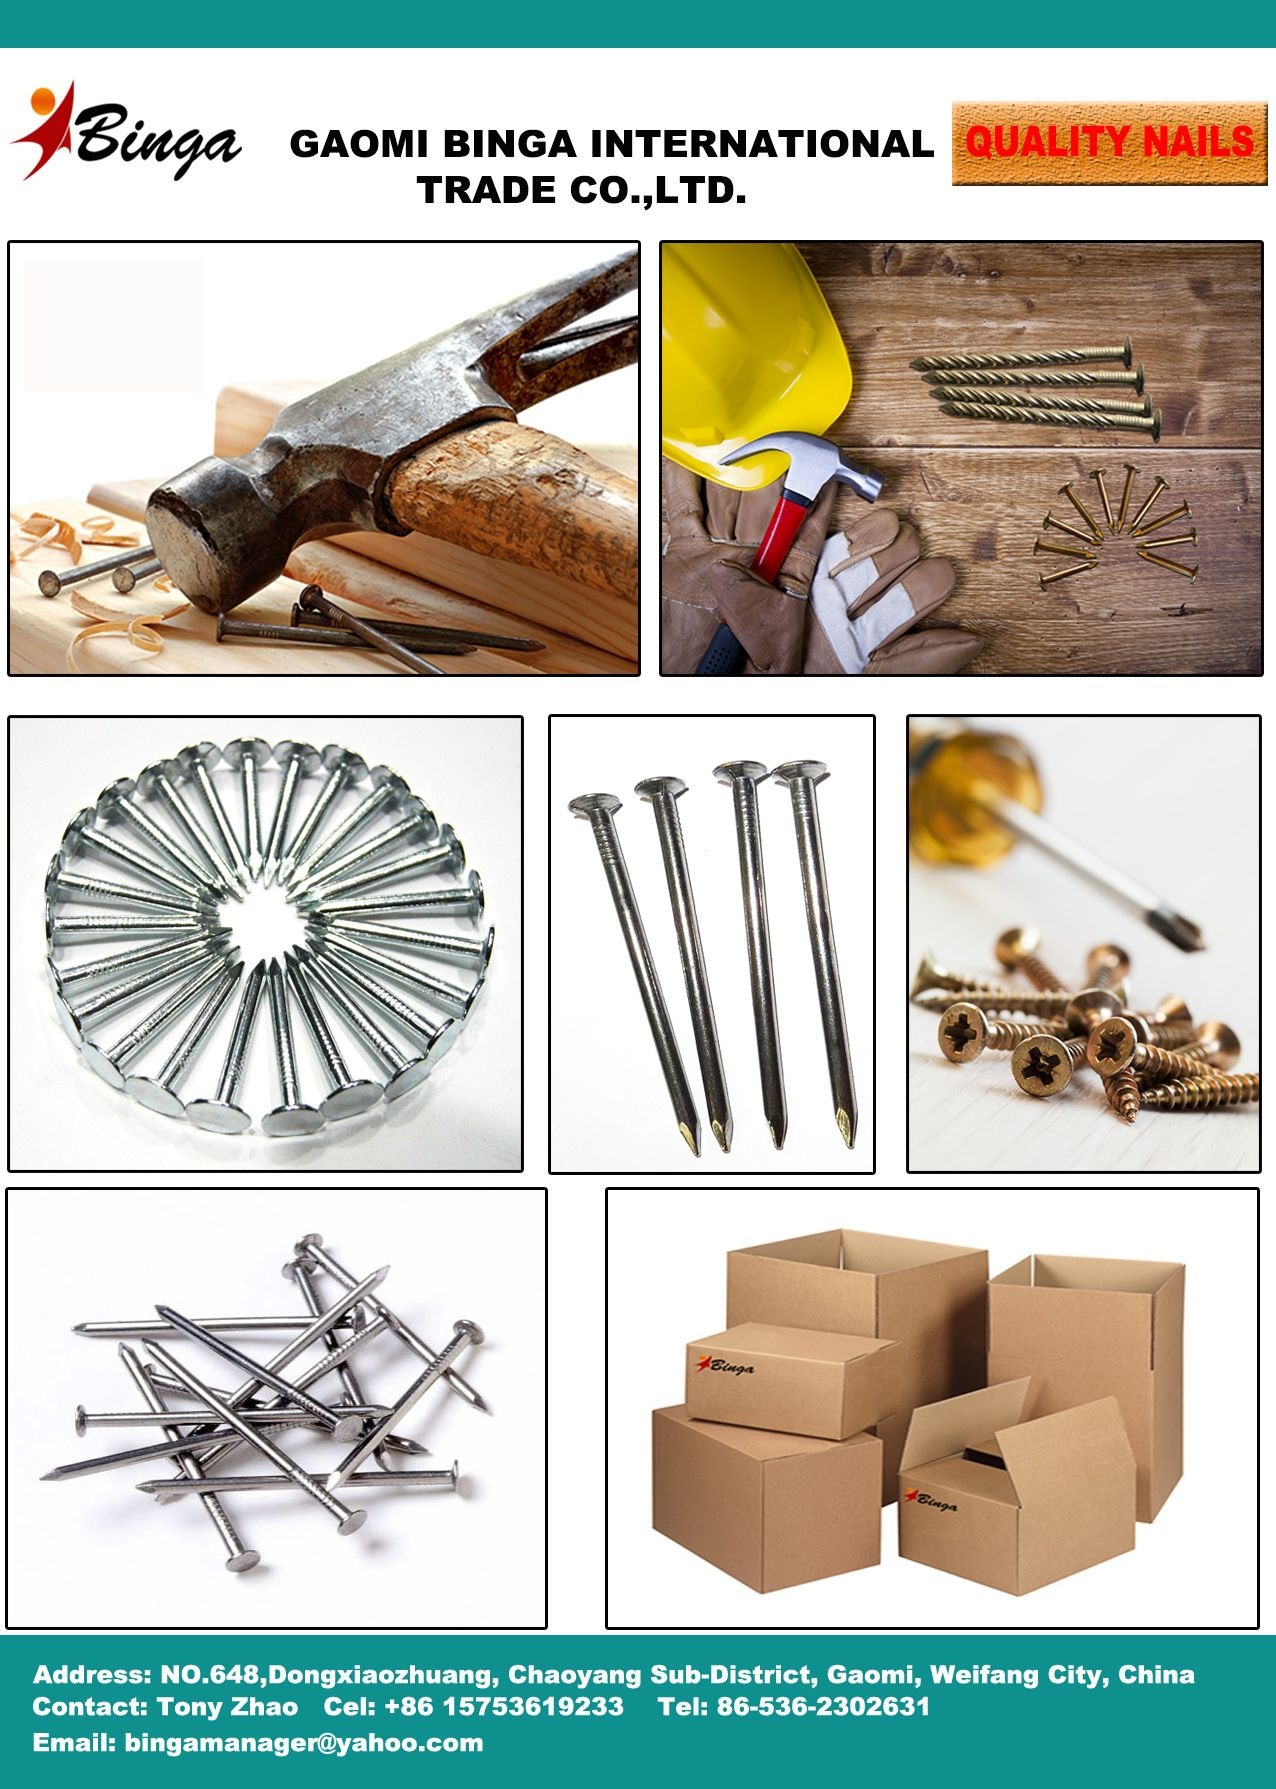 Gaomi Binga International Trade Co Ltd Export Galvanized Roofing Nails Common Round Nails Iron Nails Steel Na Steel Nails Roofing Nails Galvanized Roofing